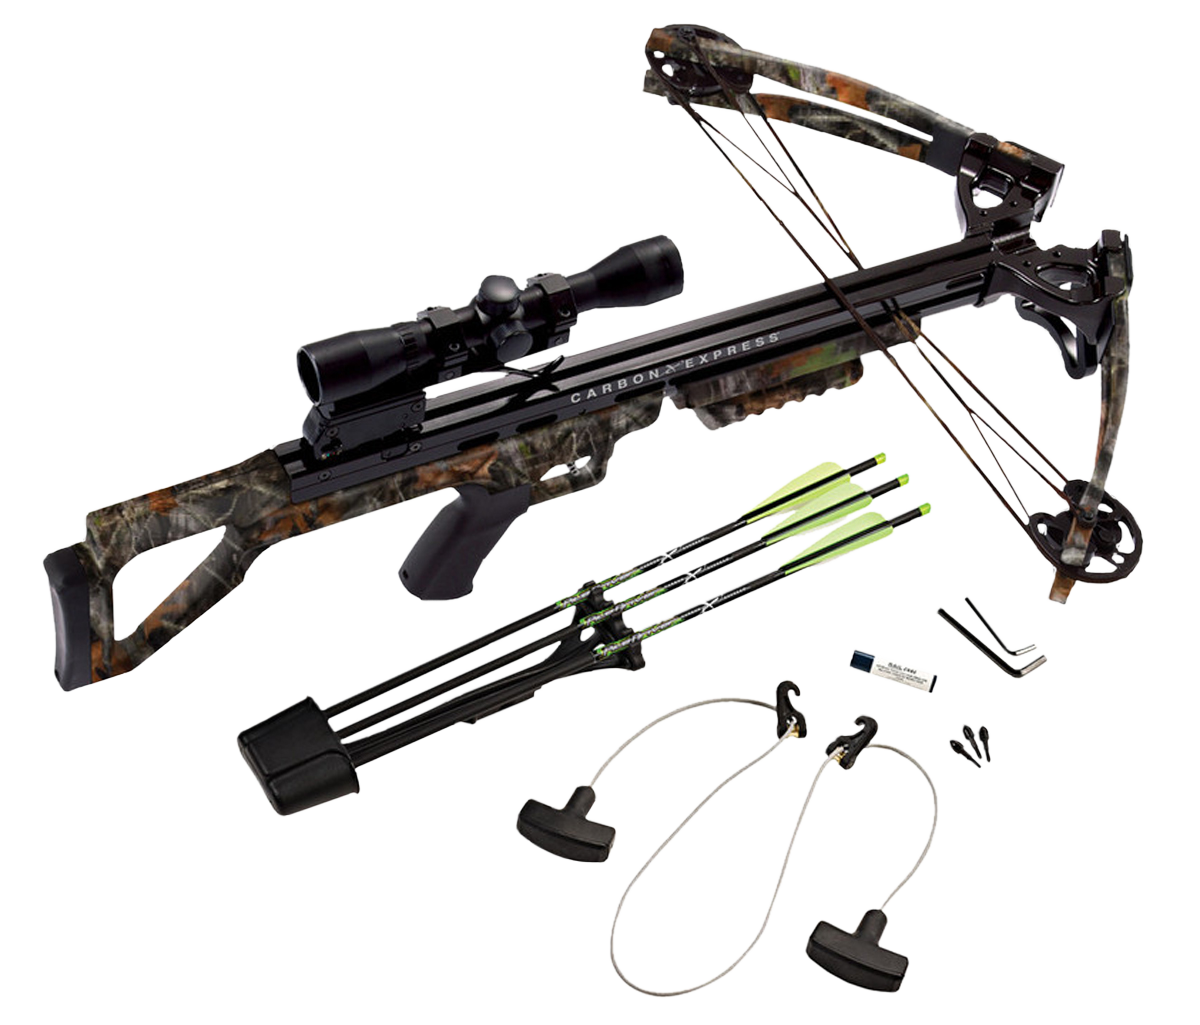 Carbon Express 20255 Covert Crossbow Camo